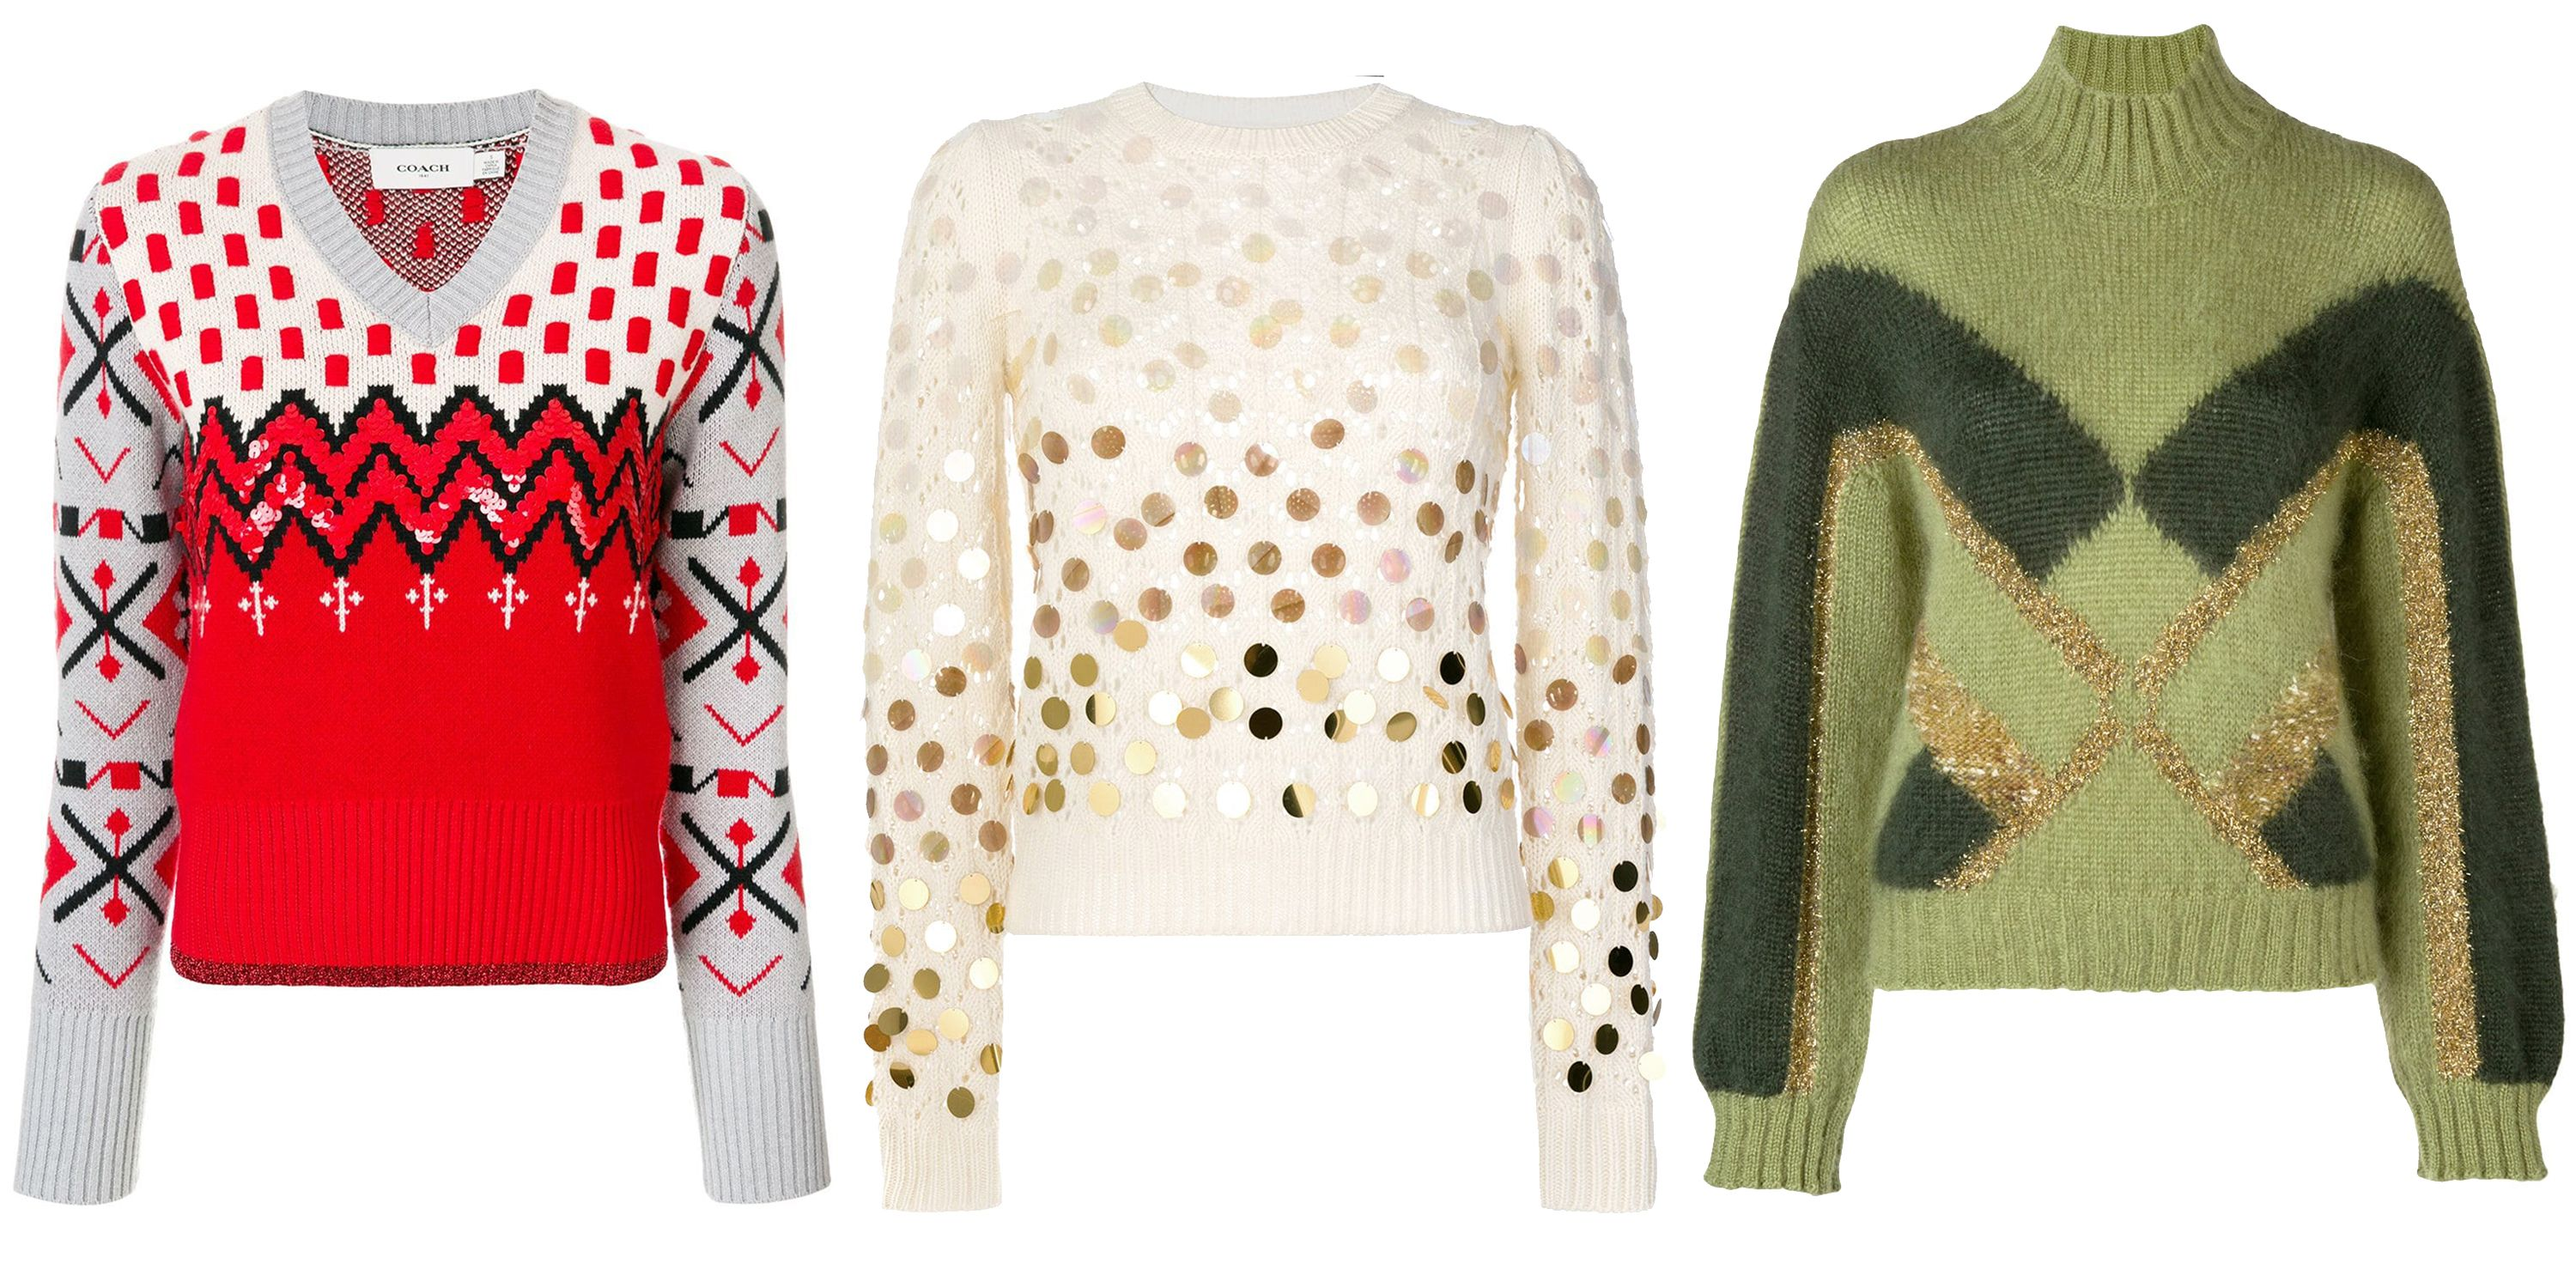 20+ Prettiest Christmas Sweaters - Cute and Stylish Holiday Sweaters